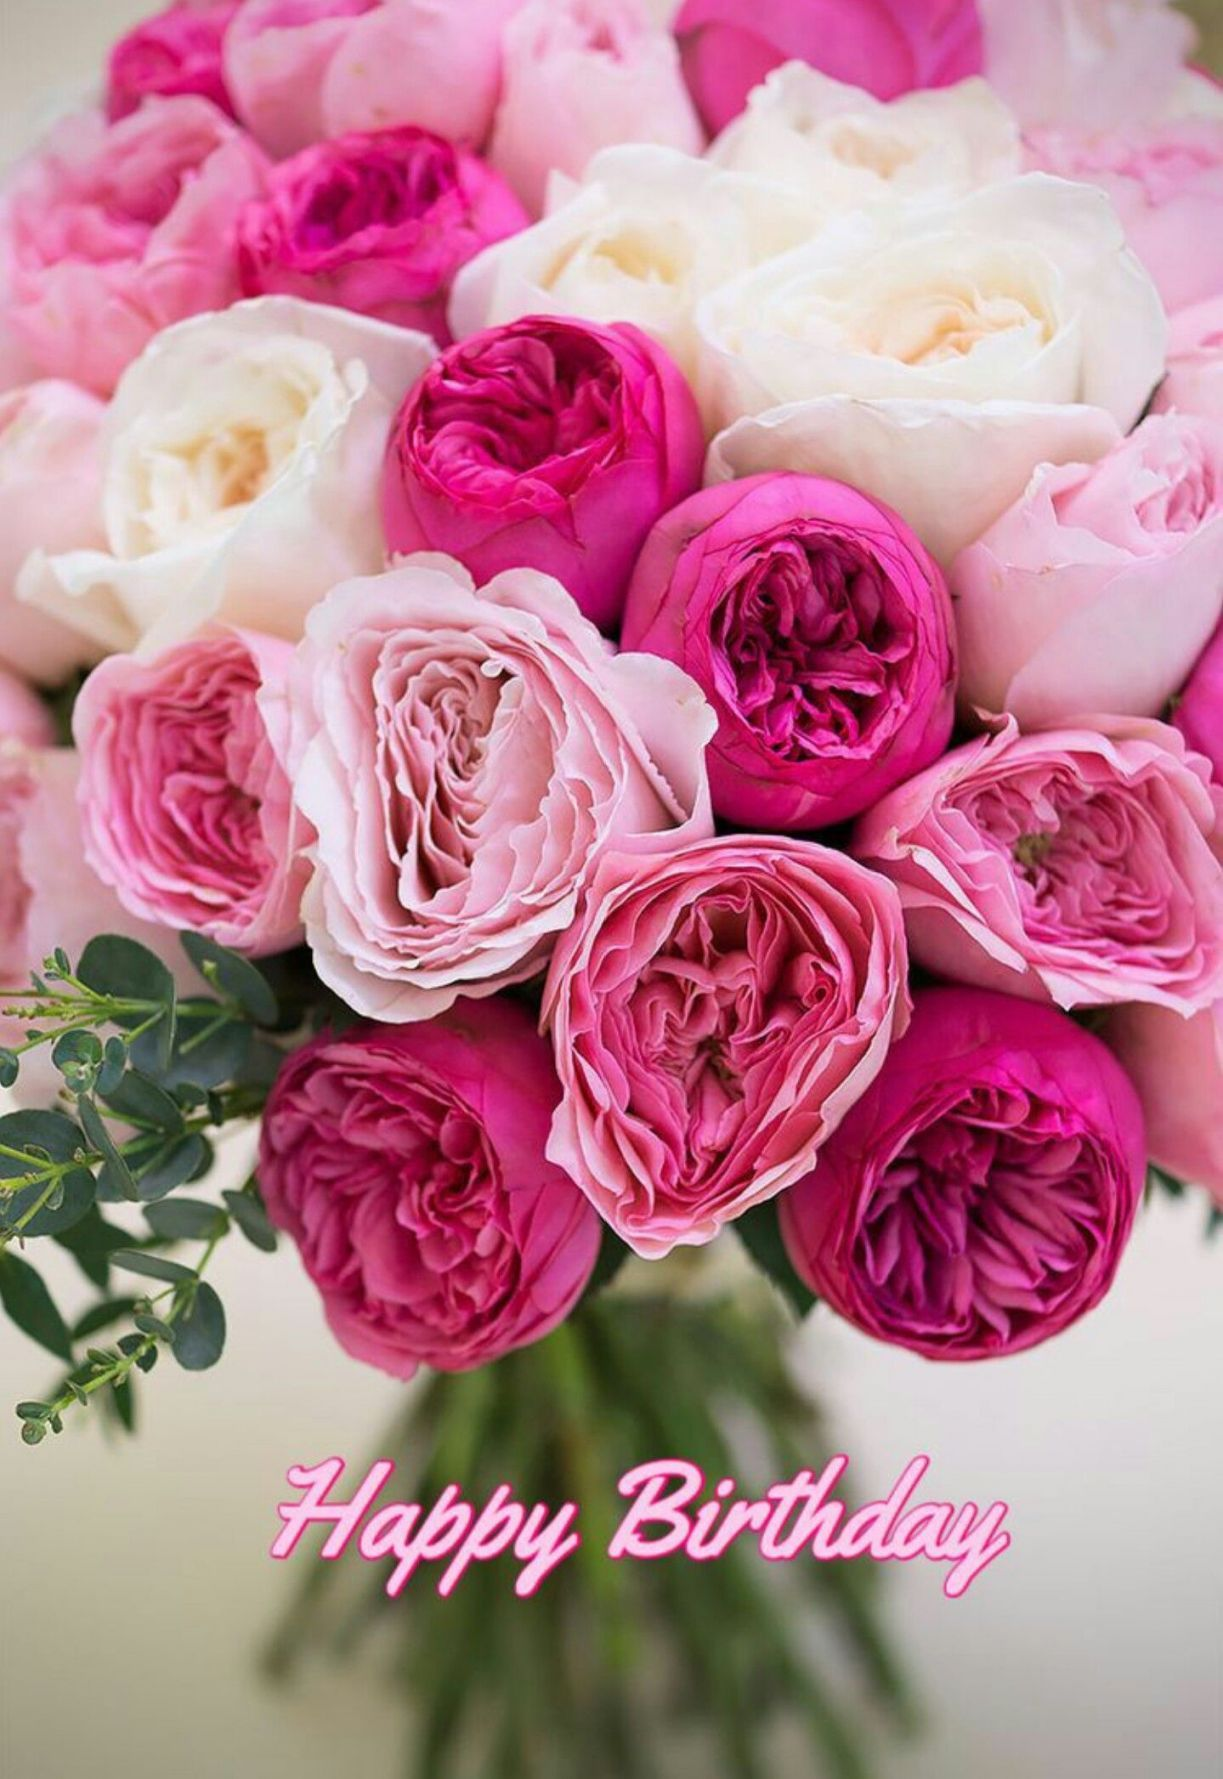 10 Benefits Of Birthday Flowers To My Wife That May Change Your Perspective Birthday Flowers To In 2020 Happy Birthday Flower Birthday Wishes Flowers Birthday Flowers